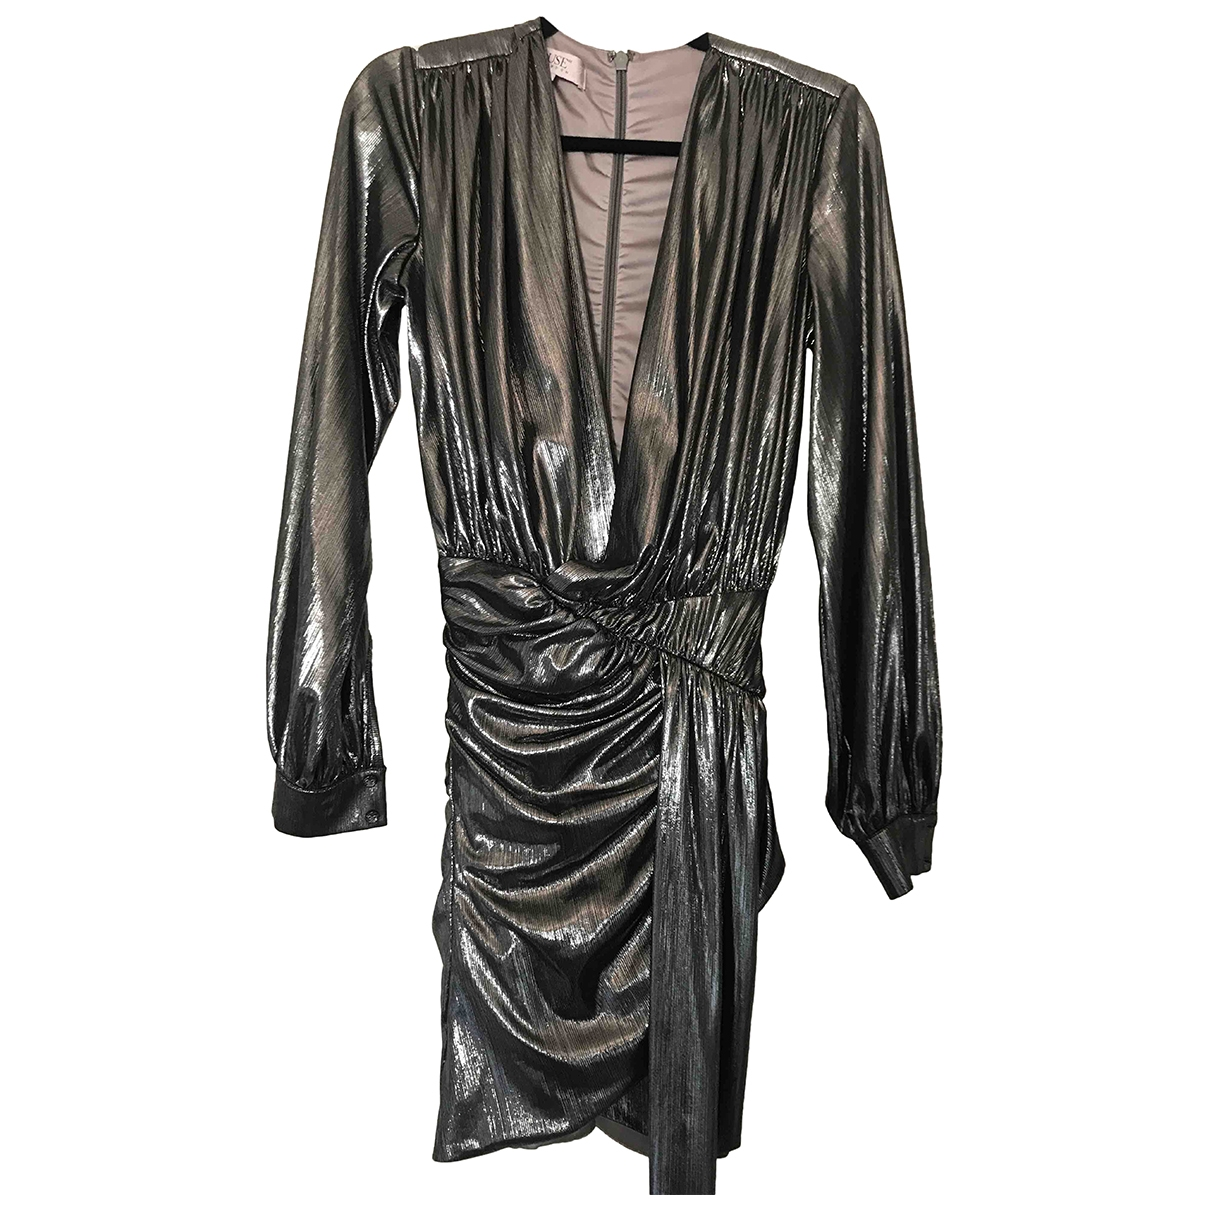 House Of Cb \N Metallic dress for Women S International